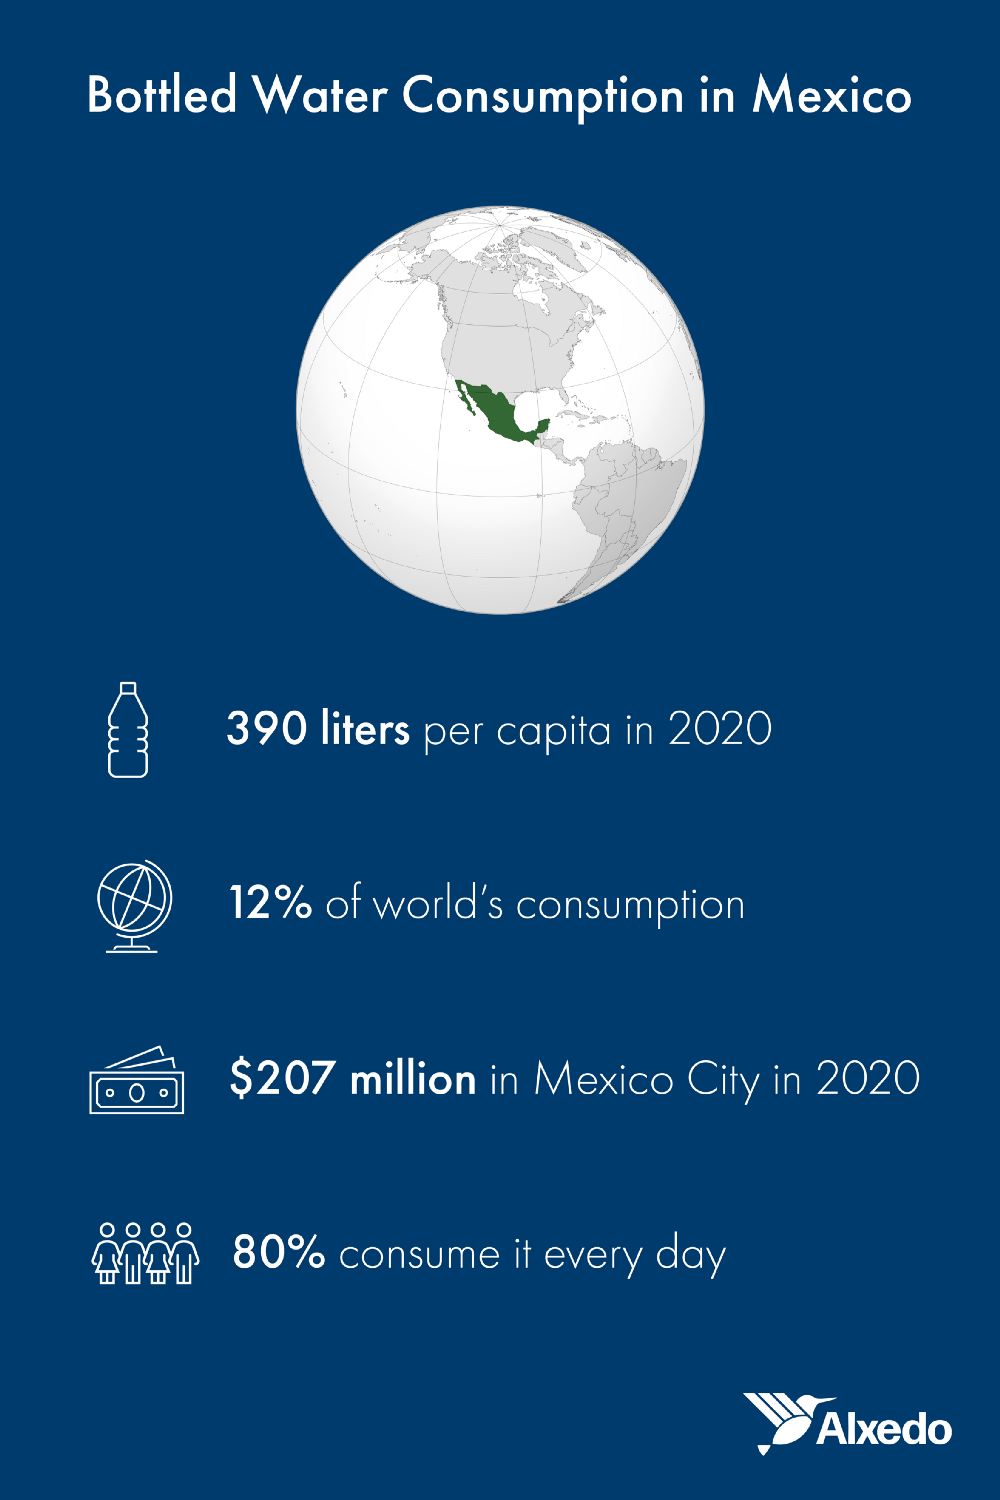 Bottled water consumption in Mexico: 390 liters per capita in 2020, 12% of worlds consumption, $207 million in Mexico City in 2020, 80% consume it every day